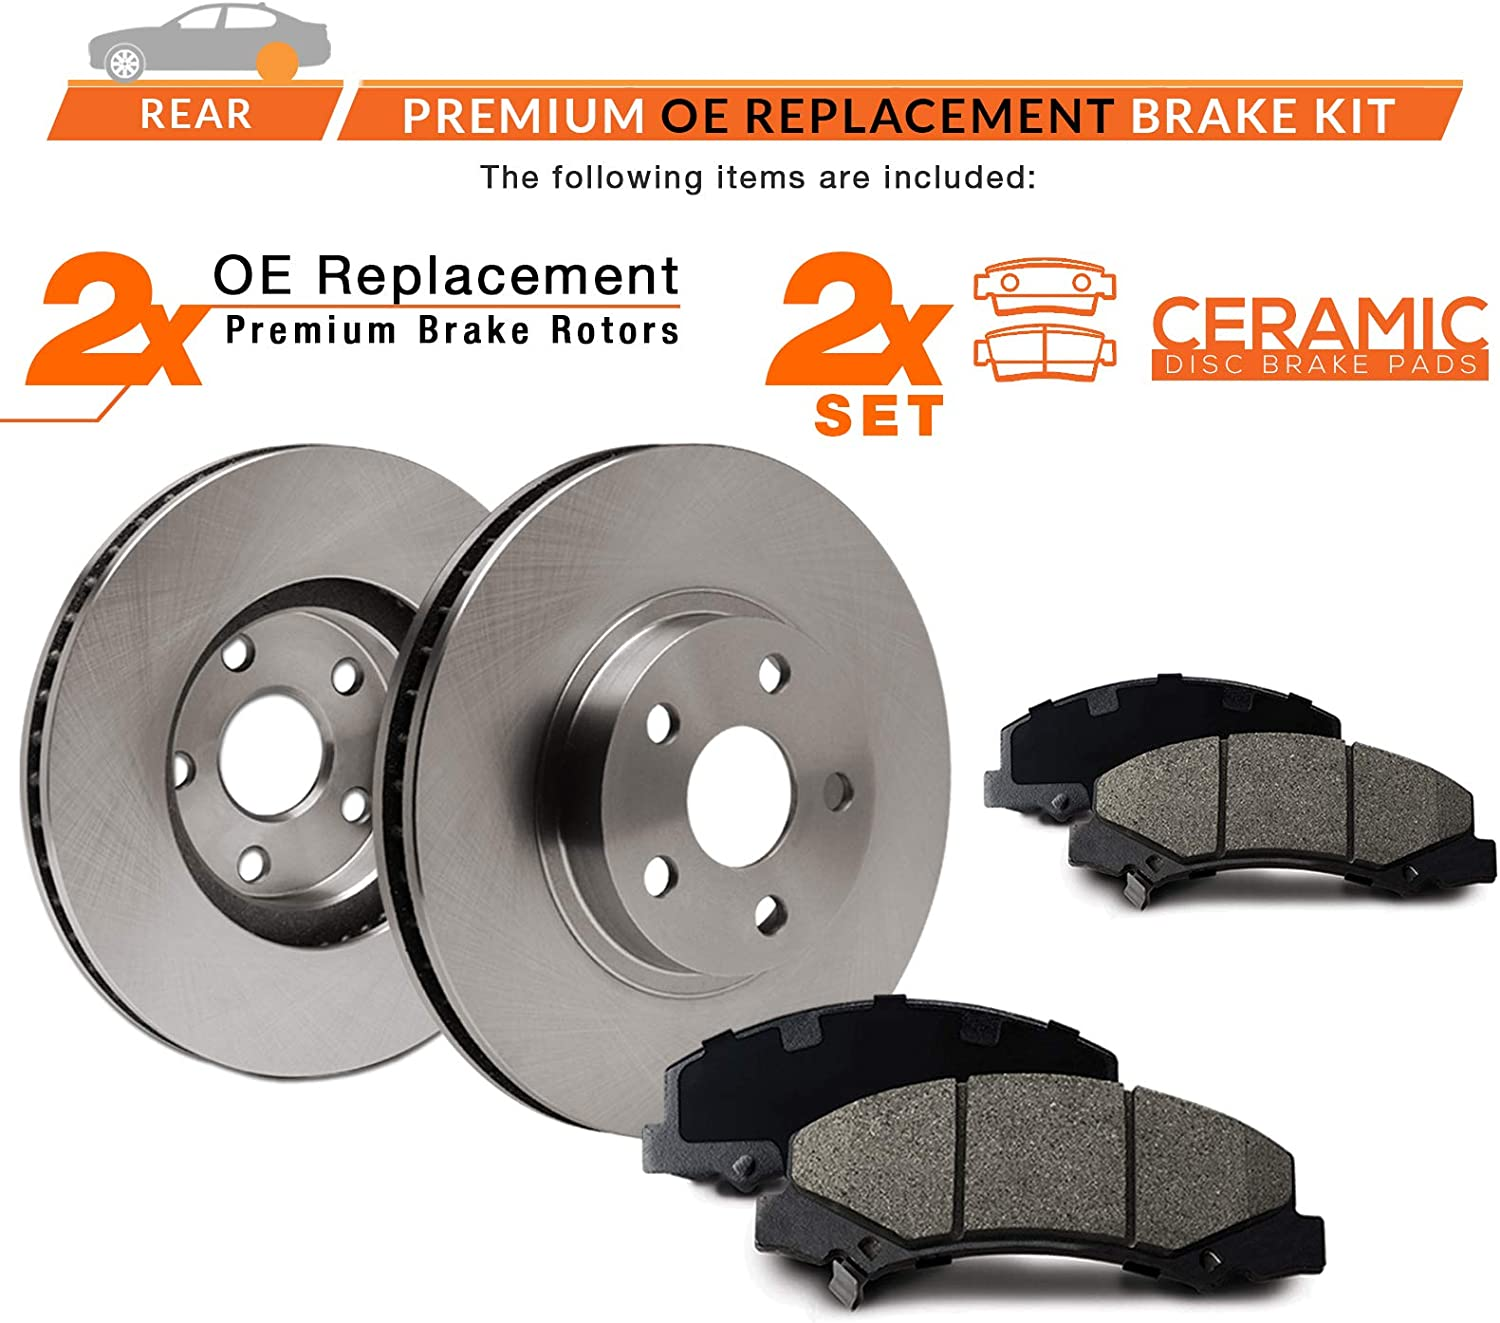 Rear Max Brakes Premium OE Rotors with Carbon Ceramic Pads KT077242